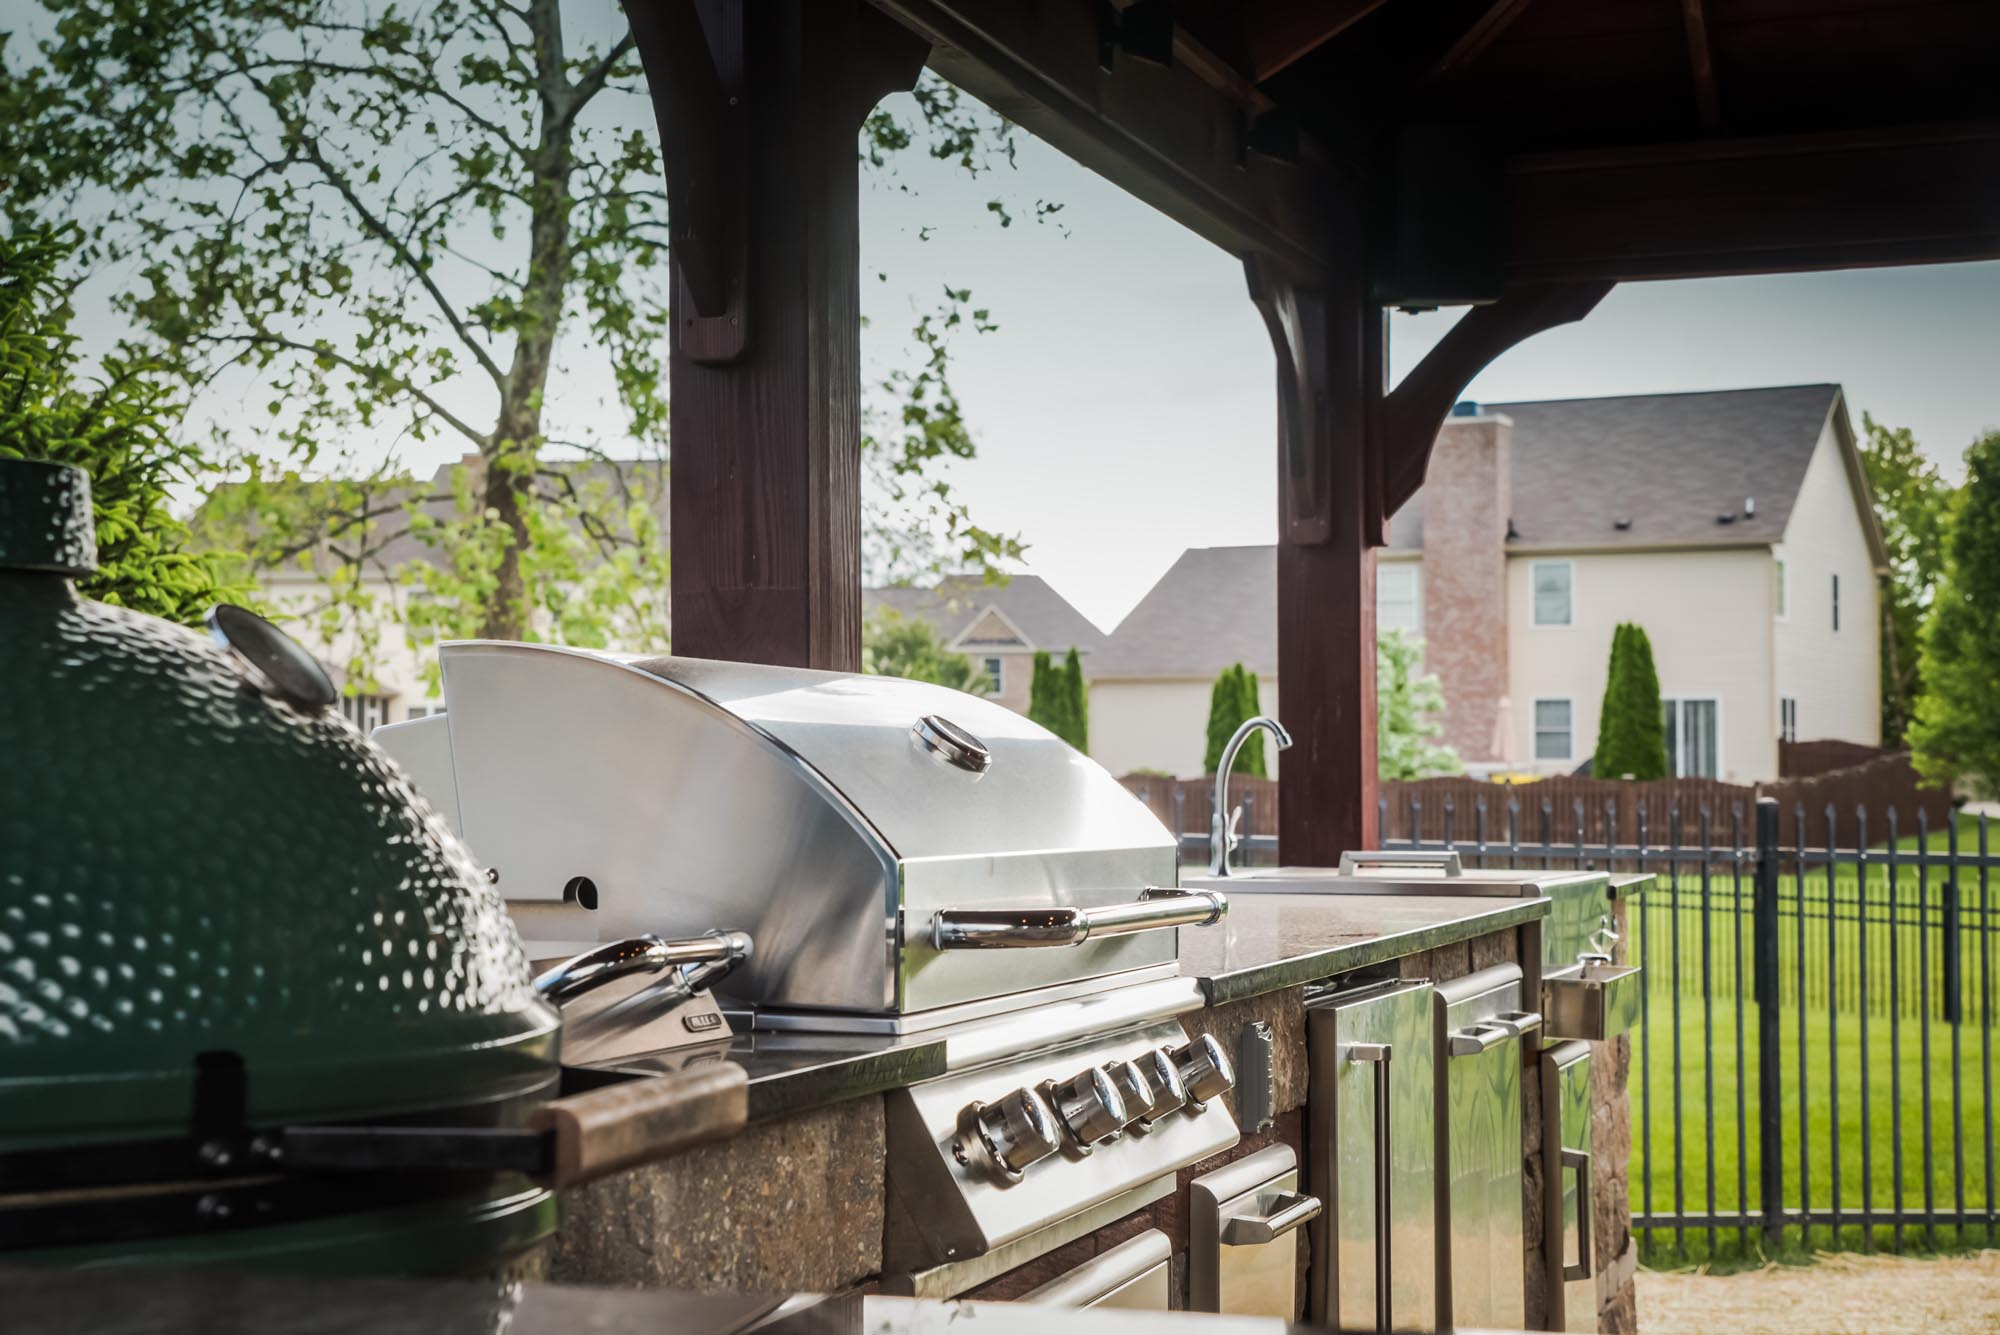 Calvin landscape built in gas grill and Big Green Egg